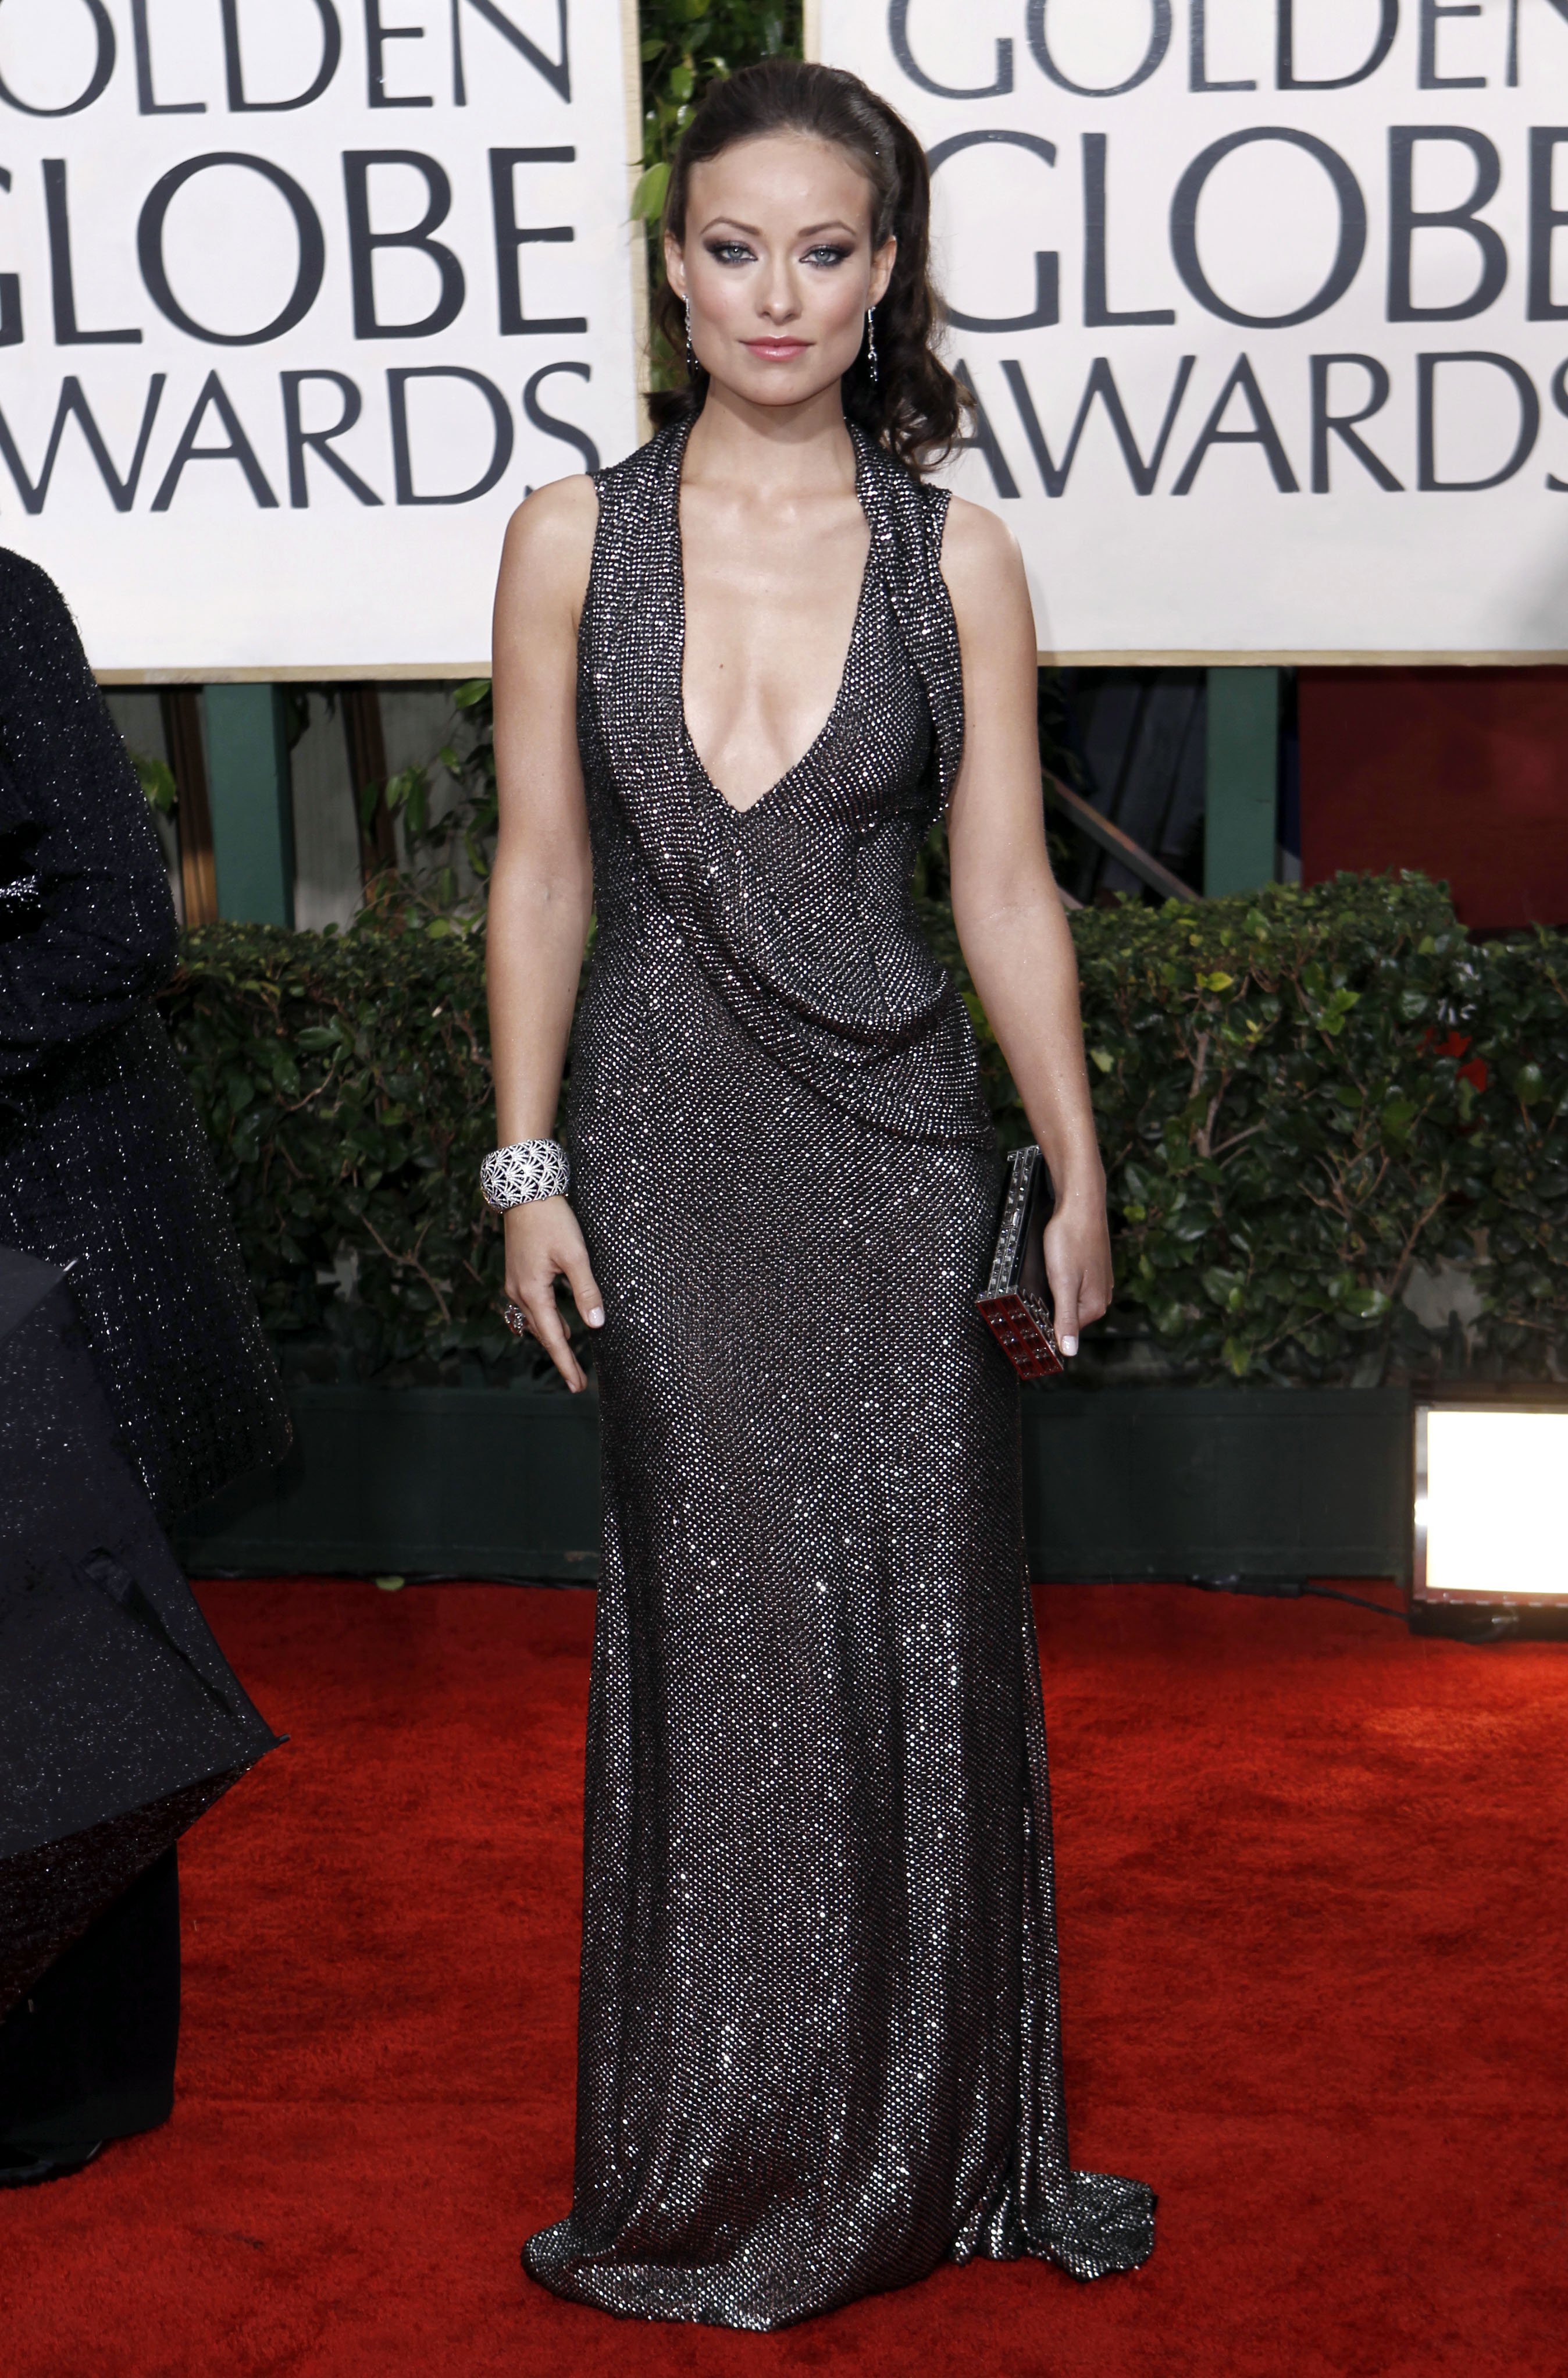 78425_Olivia_Wilde_arrives_at_the_67th_Annual_Golden_Globe_Awards-7_122_1085lo.jpg